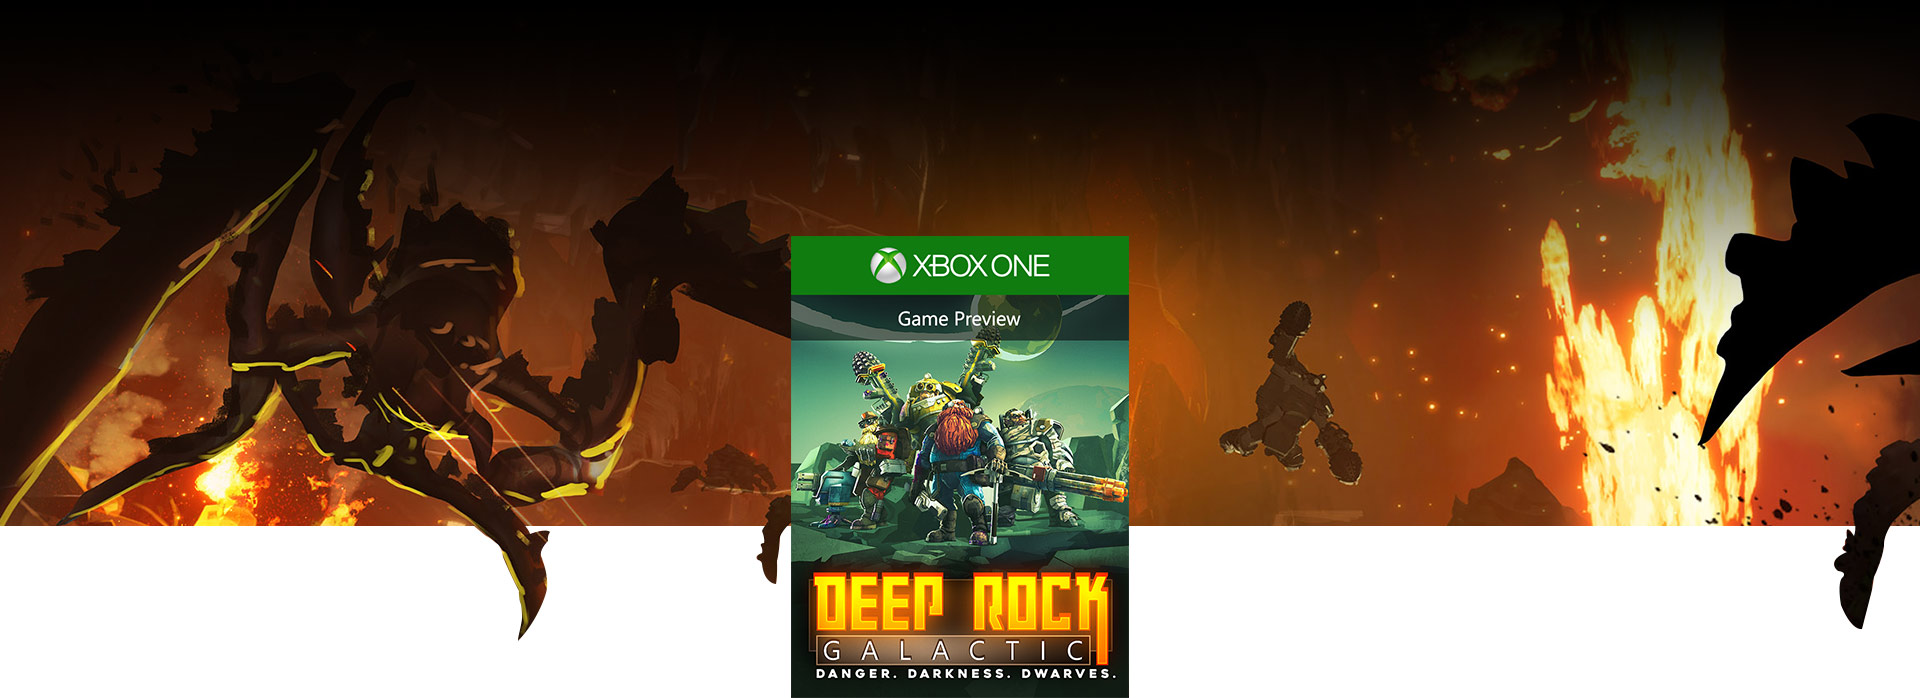 Deep Rock Galactic boxshot, multiple alien creatures falling in a lava pit